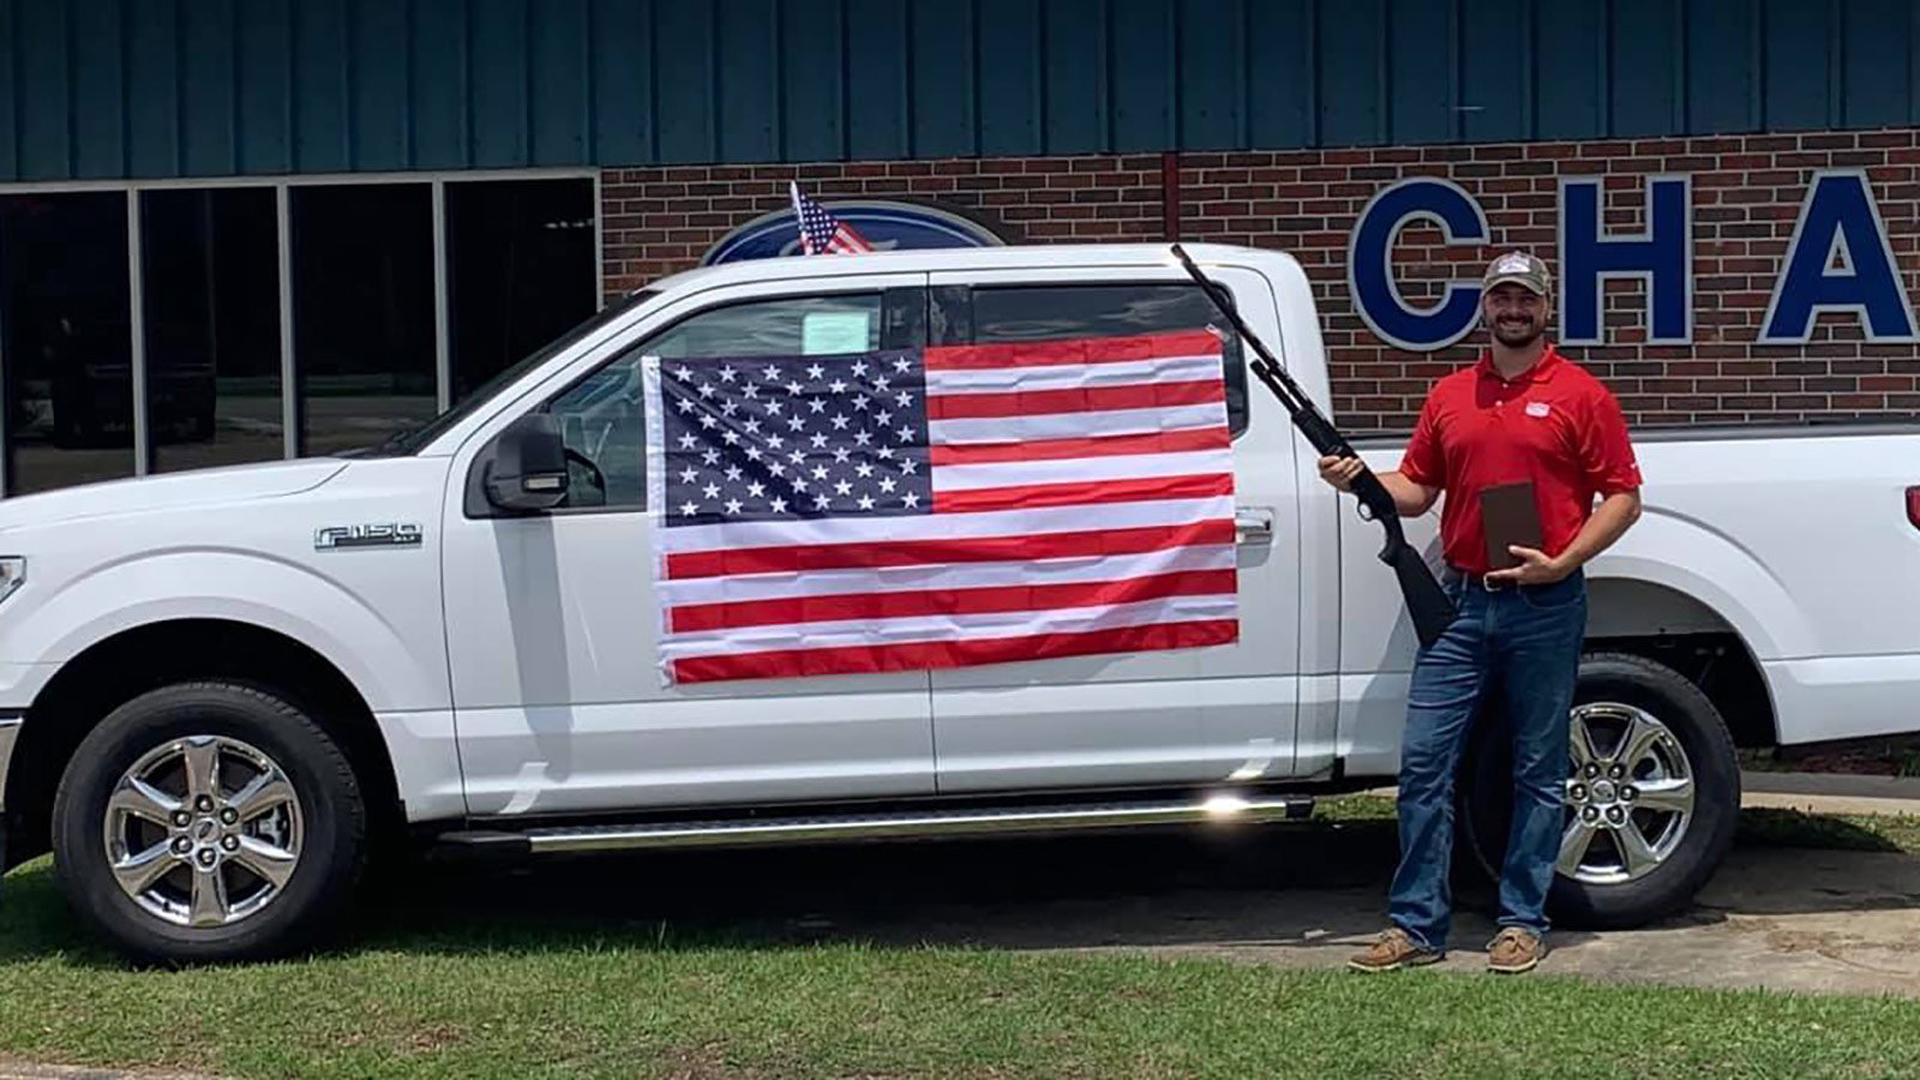 Chatom Ford in Alabama ended a promotion that gave away bibles, American flags and gift certificates for a shotgun to customers who purchased any new or used vehicle throughout July. (Credit: Chatom Ford via CNN)